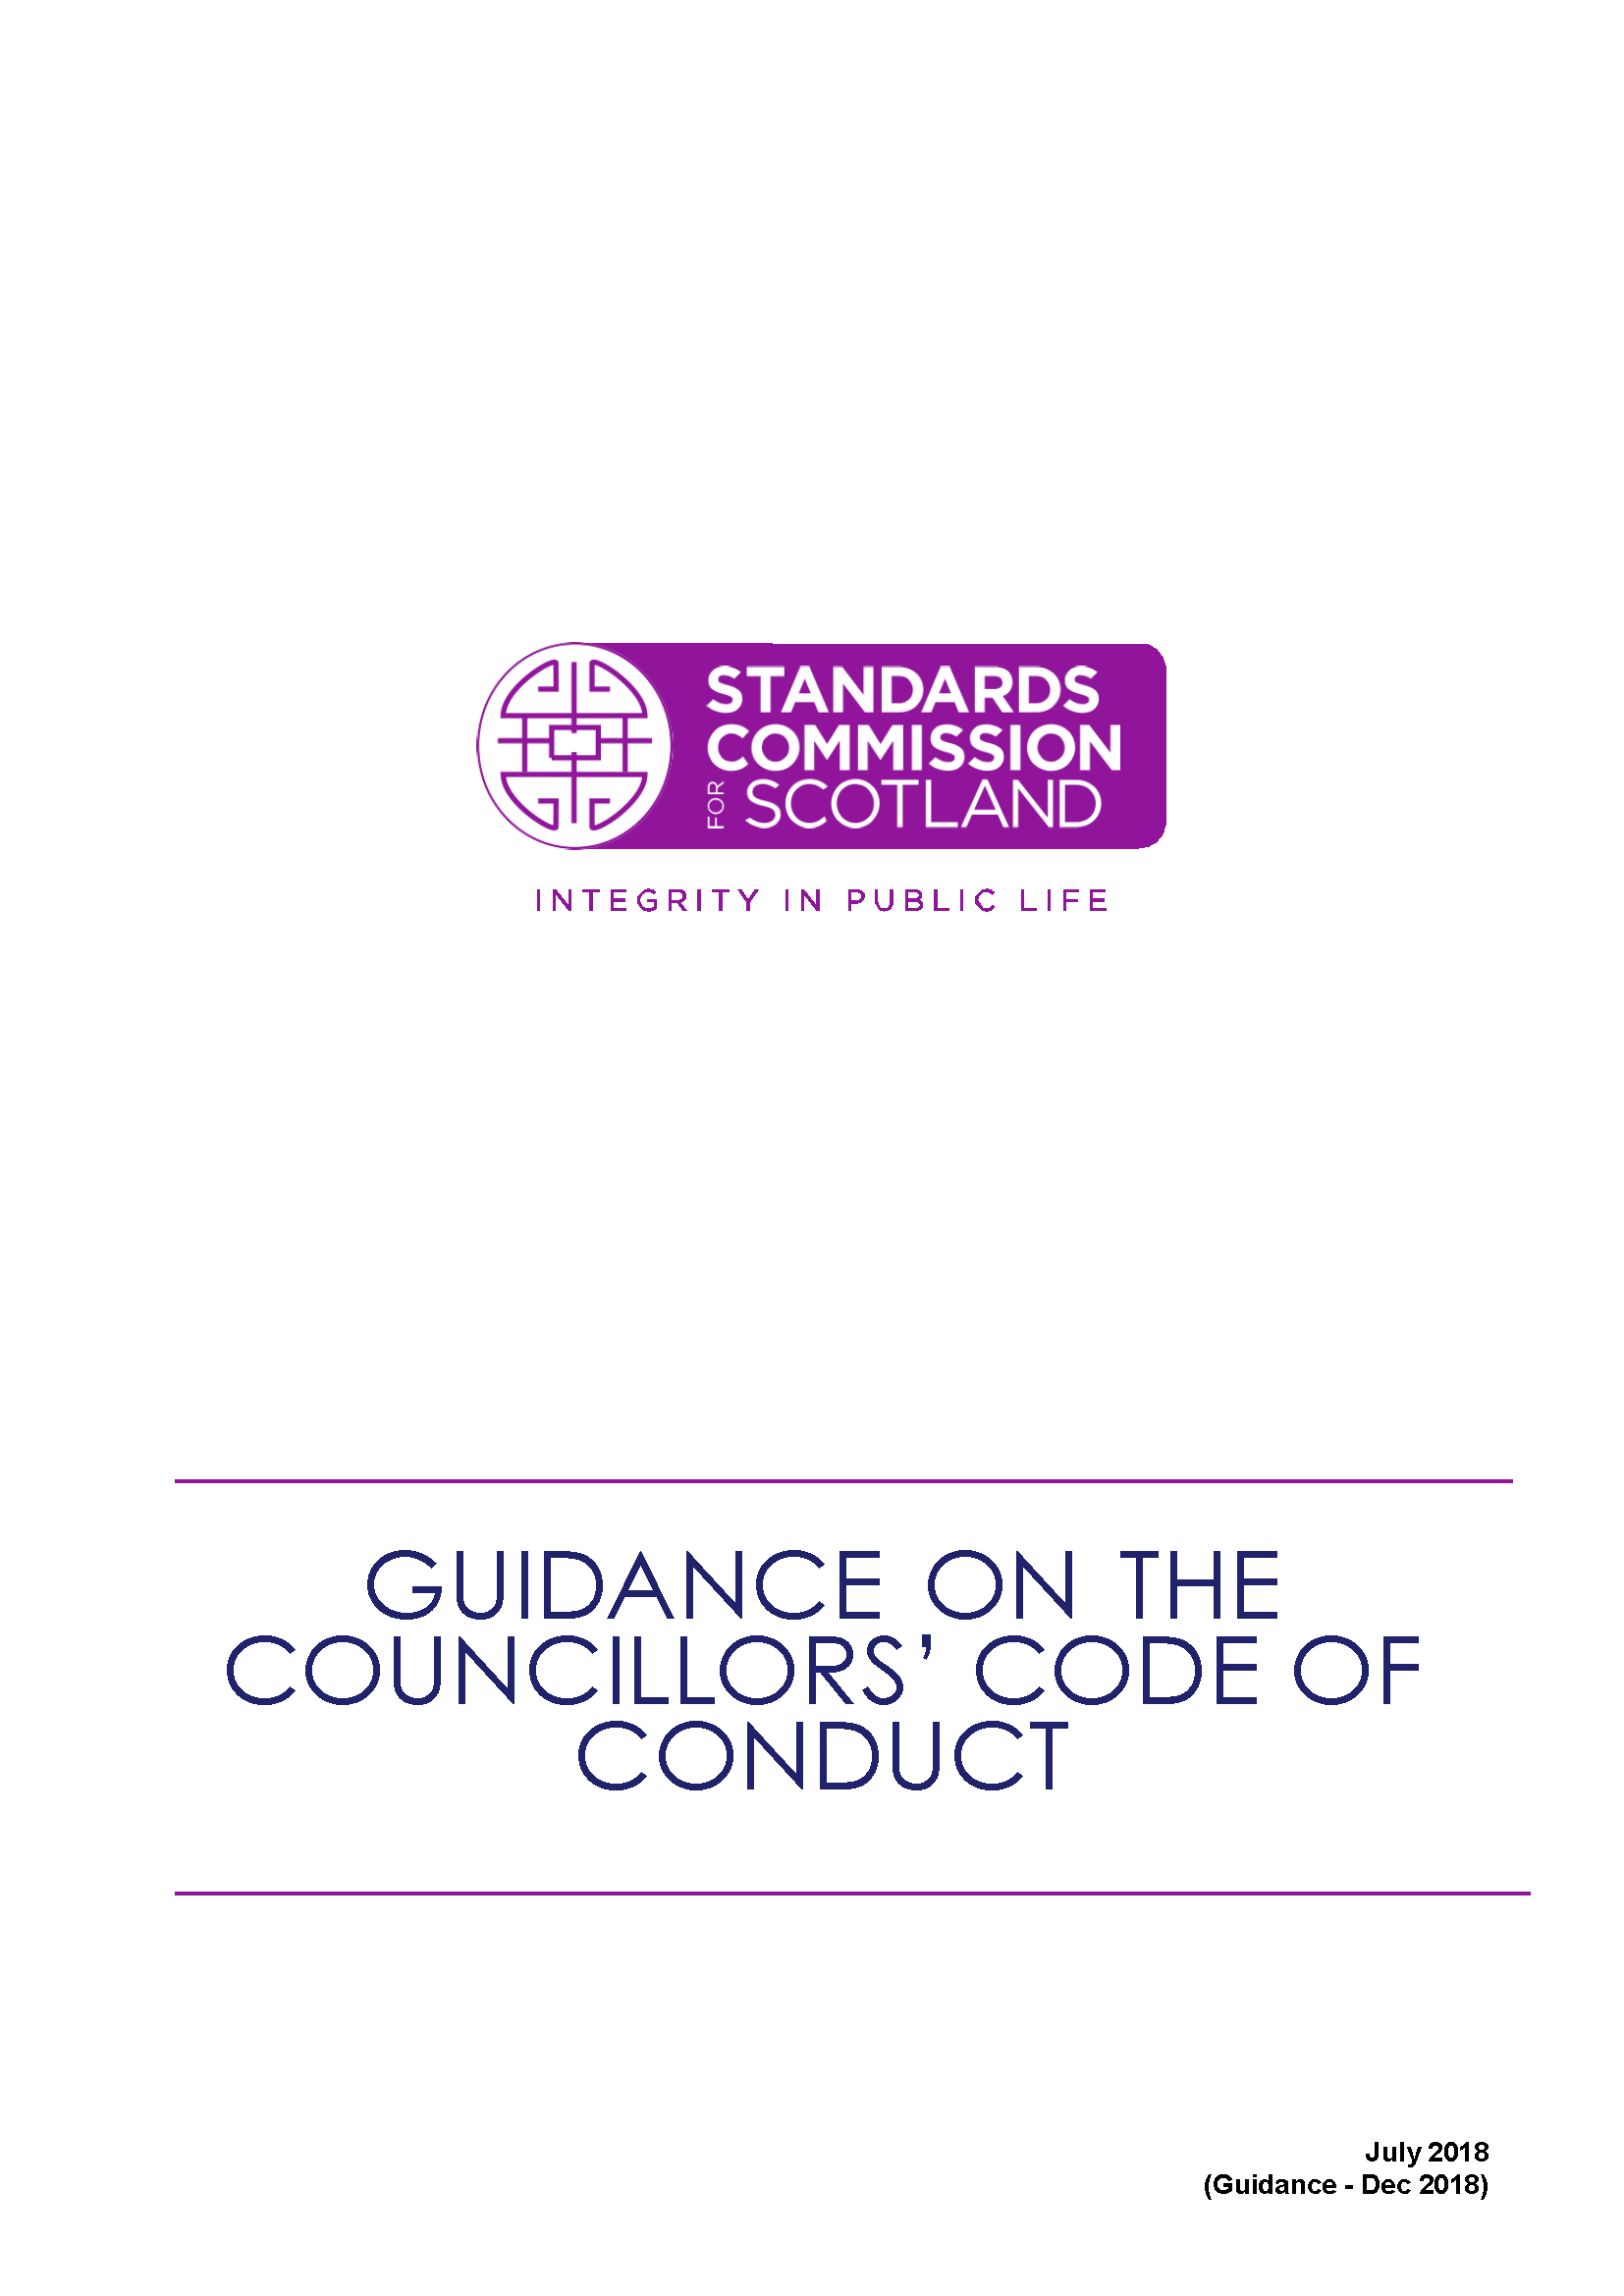 Guidance on the Councillors' Code of Conduct 2018